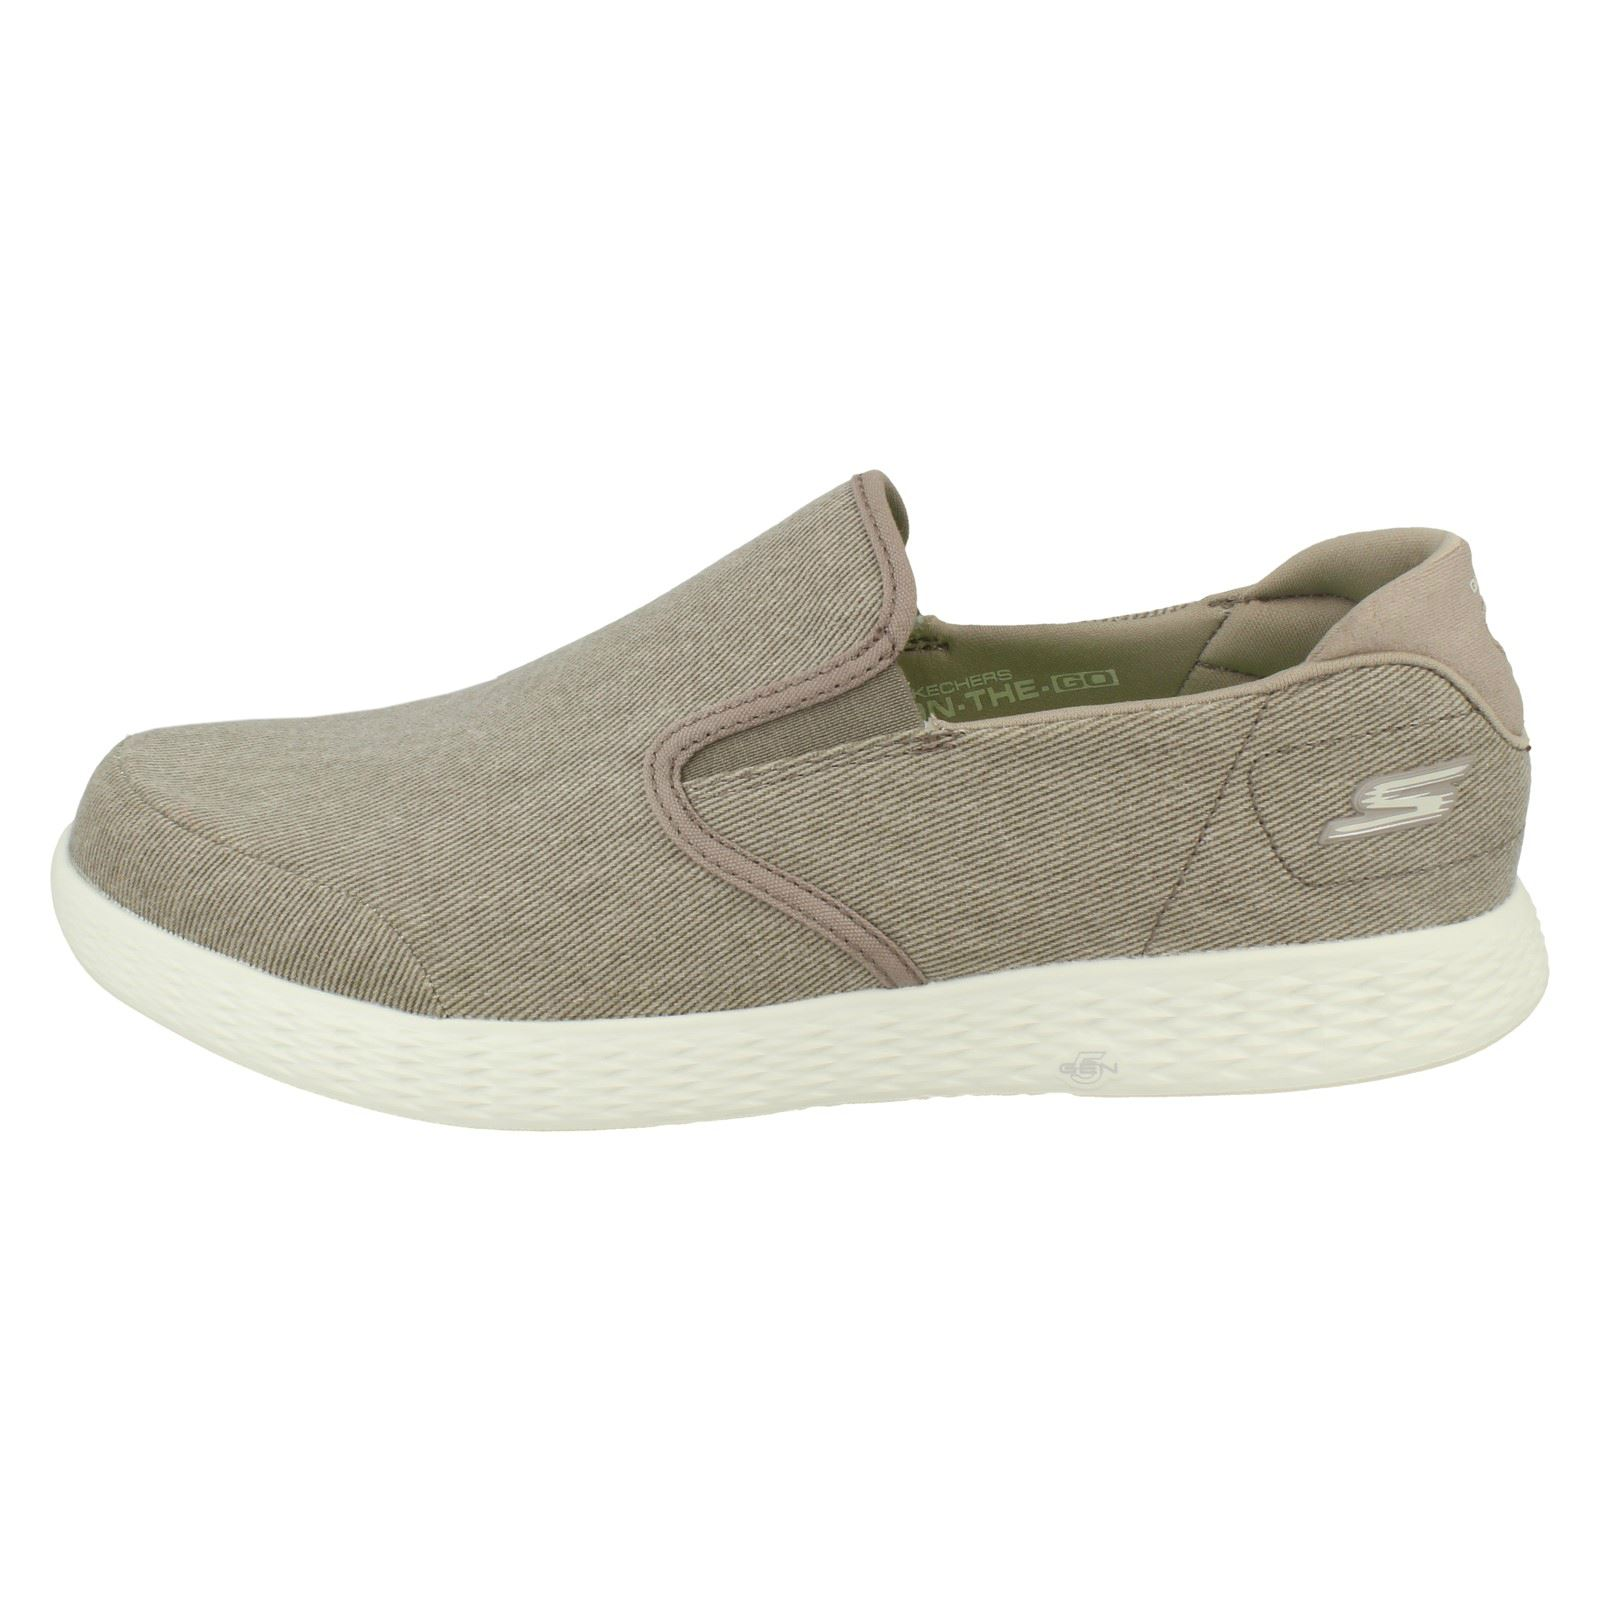 Men-Skechers-On-The-Go-Glide-Victorious-53781-Trainers thumbnail 4